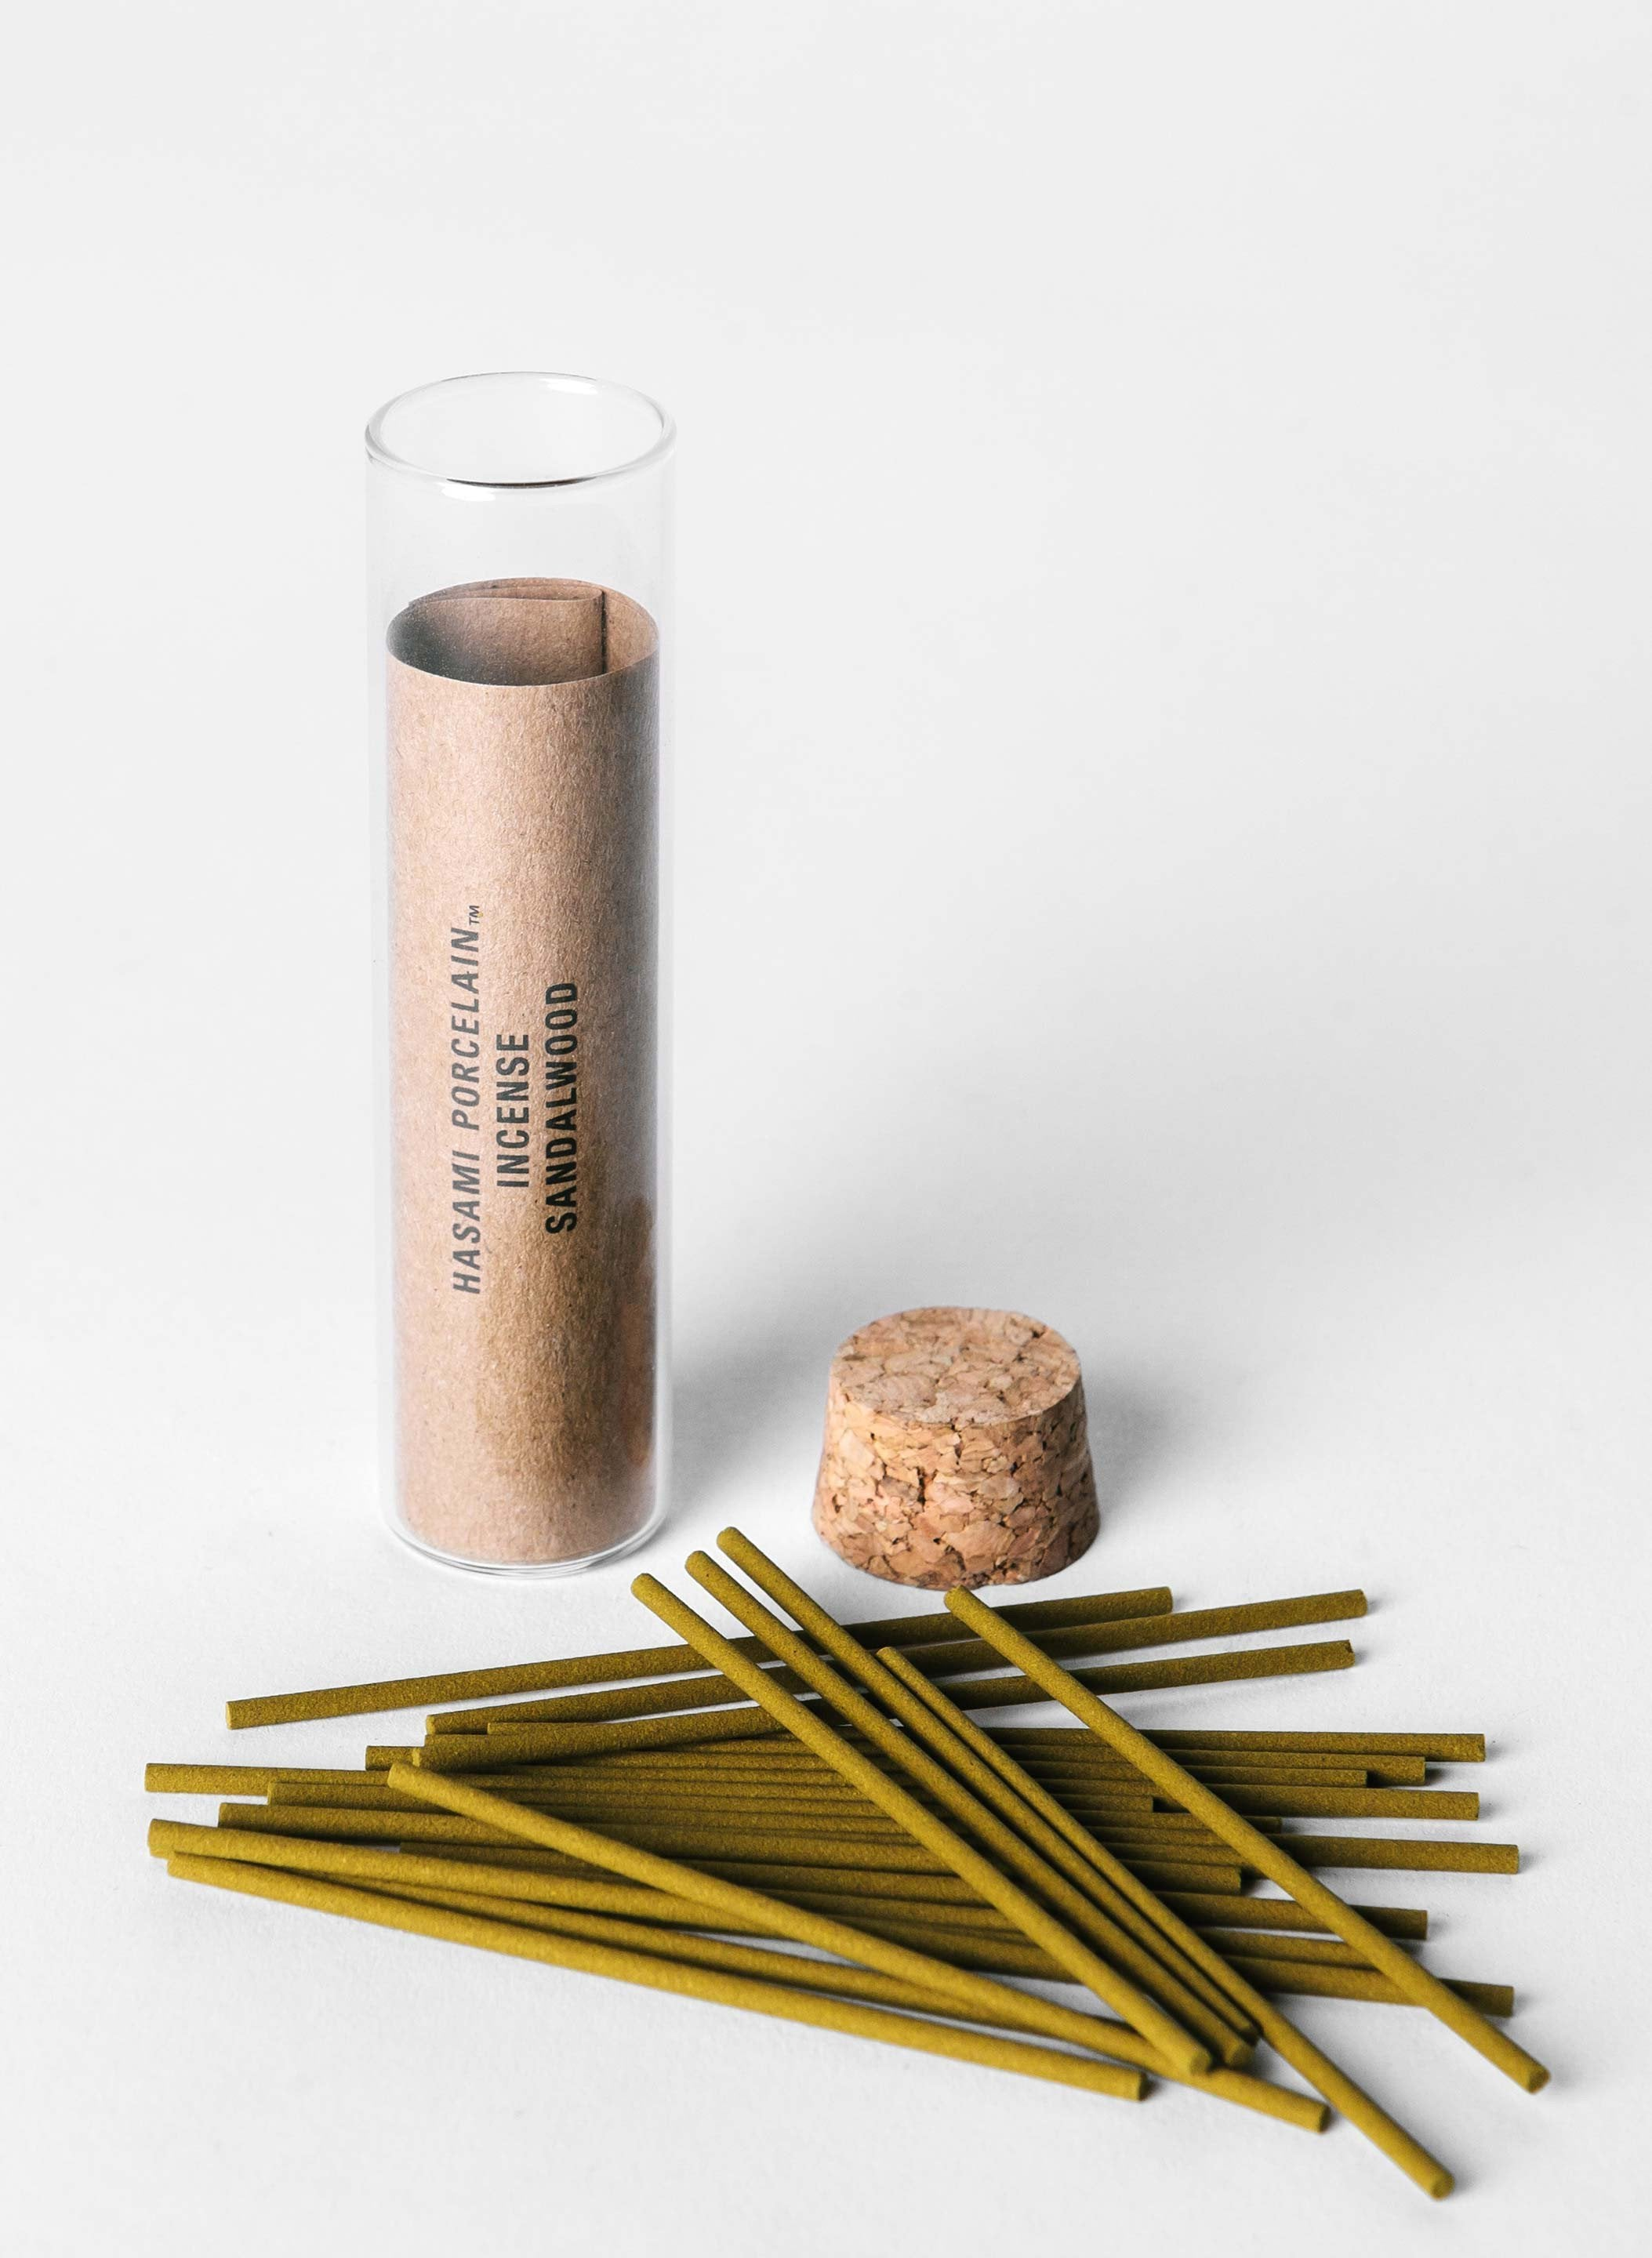 imogene + willie - hasami sandalwood incense